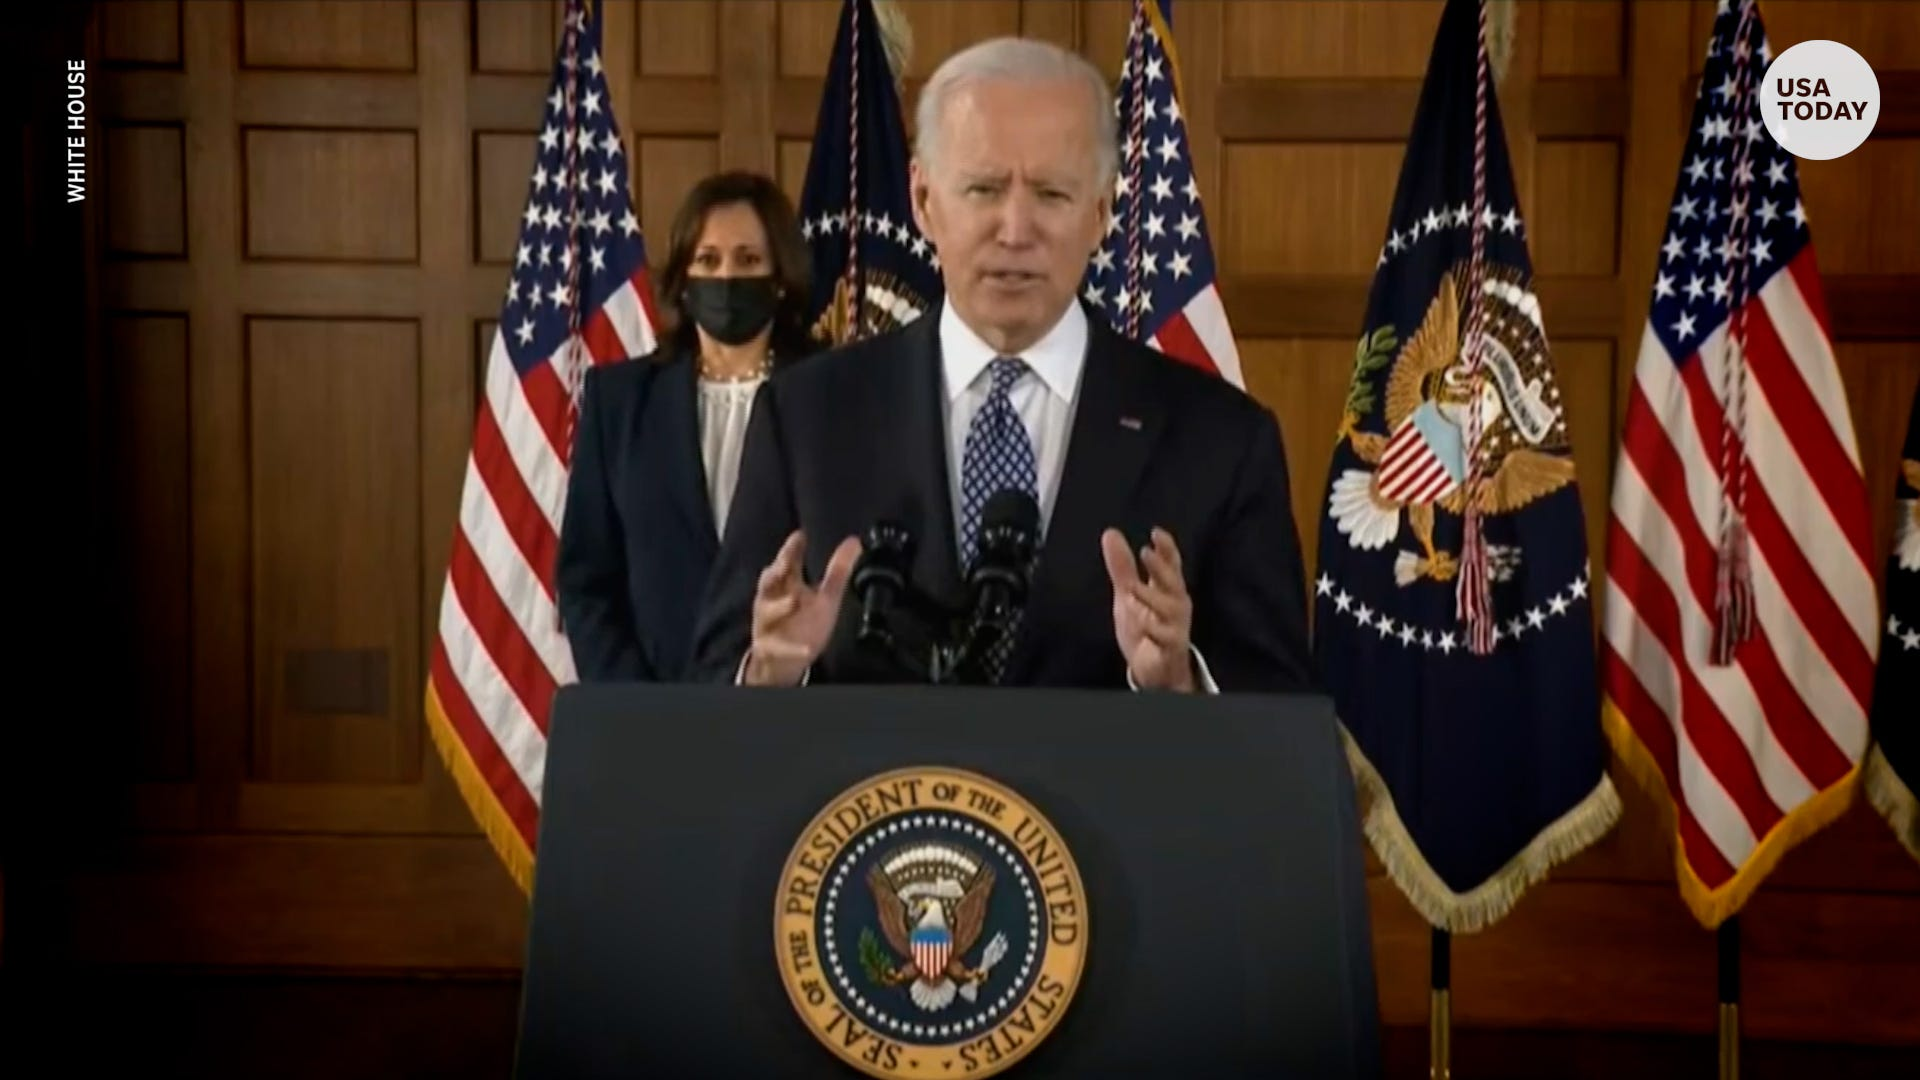 President Biden on Asian American hate crimes, 'hate can have no safe harbor in America'